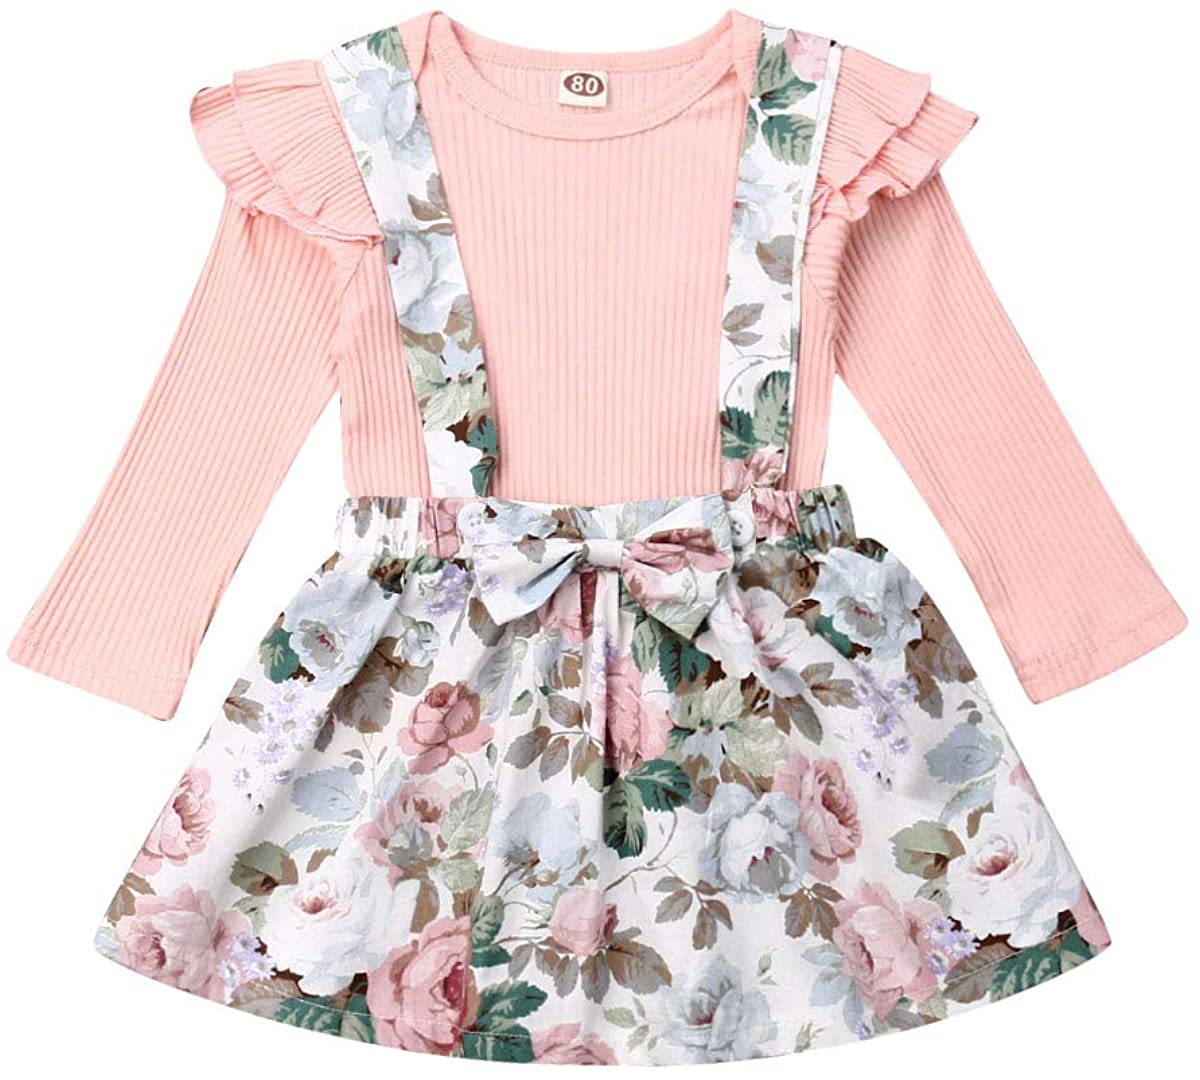 3-24Months Baby Girls Outfit Suspender Skirt, Christmas Infant Floral Overall Dress & Plain Red Ruffle Top Long Sleeve 2PCS